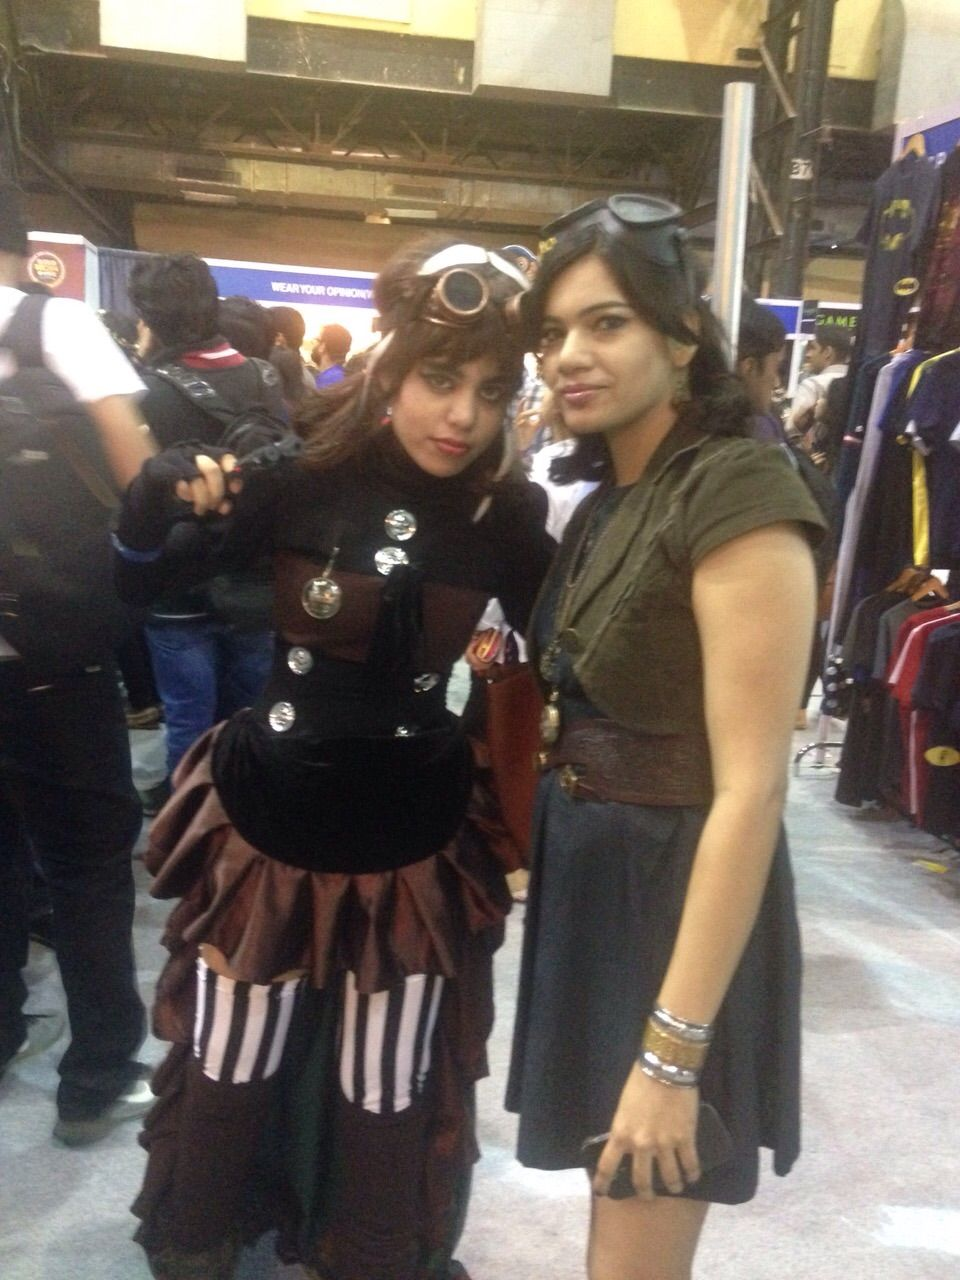 Mumbai Film & Comic Con 2014 (MFCC) - With another more dressed up Steampunk cosplayer in Mumbai